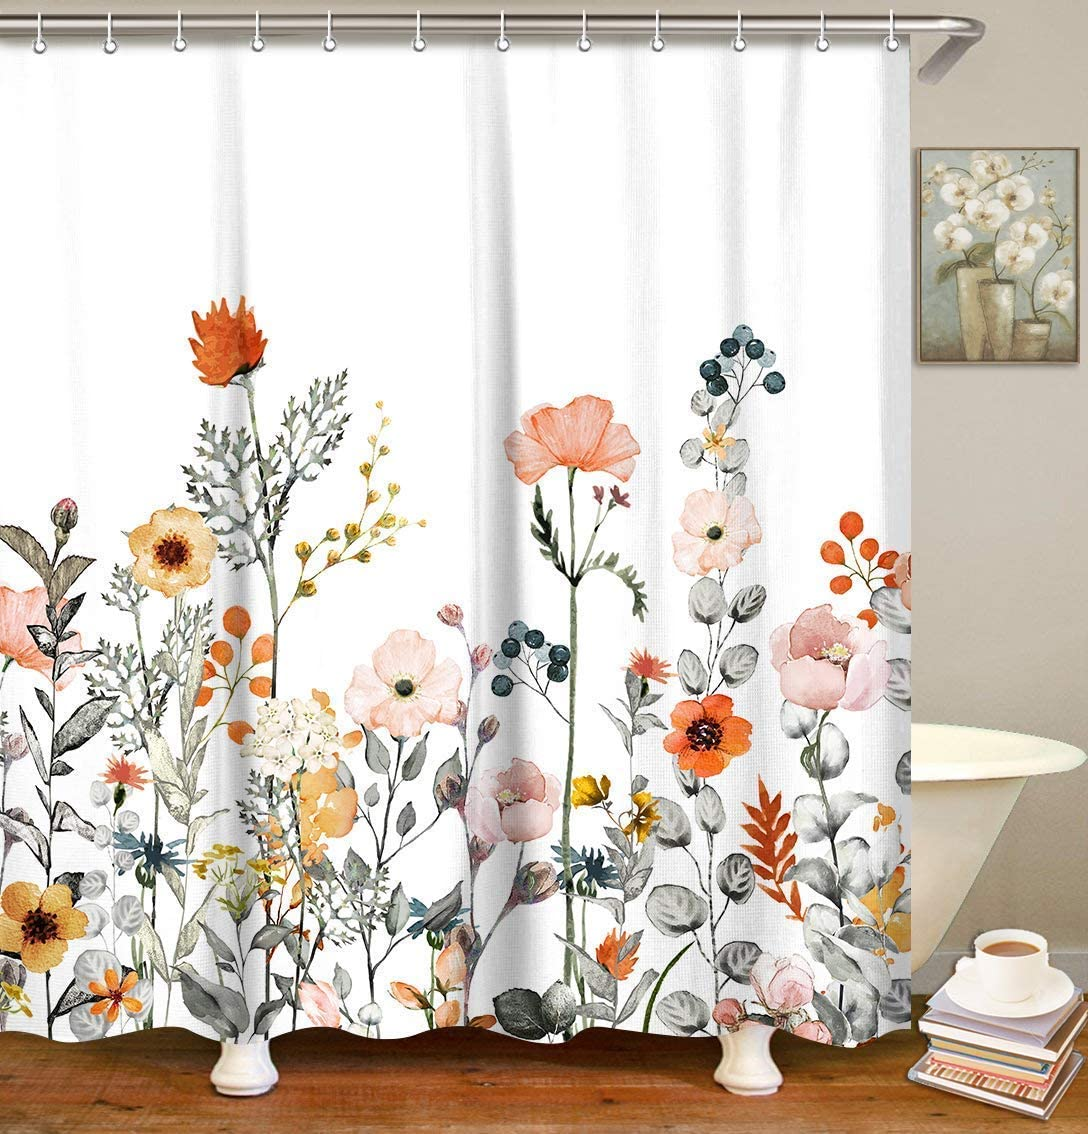 Year-end gift LIVILAN Fabric Floral Shower 100% quality warranty! Curtain Hooks Watercolo Set with 12